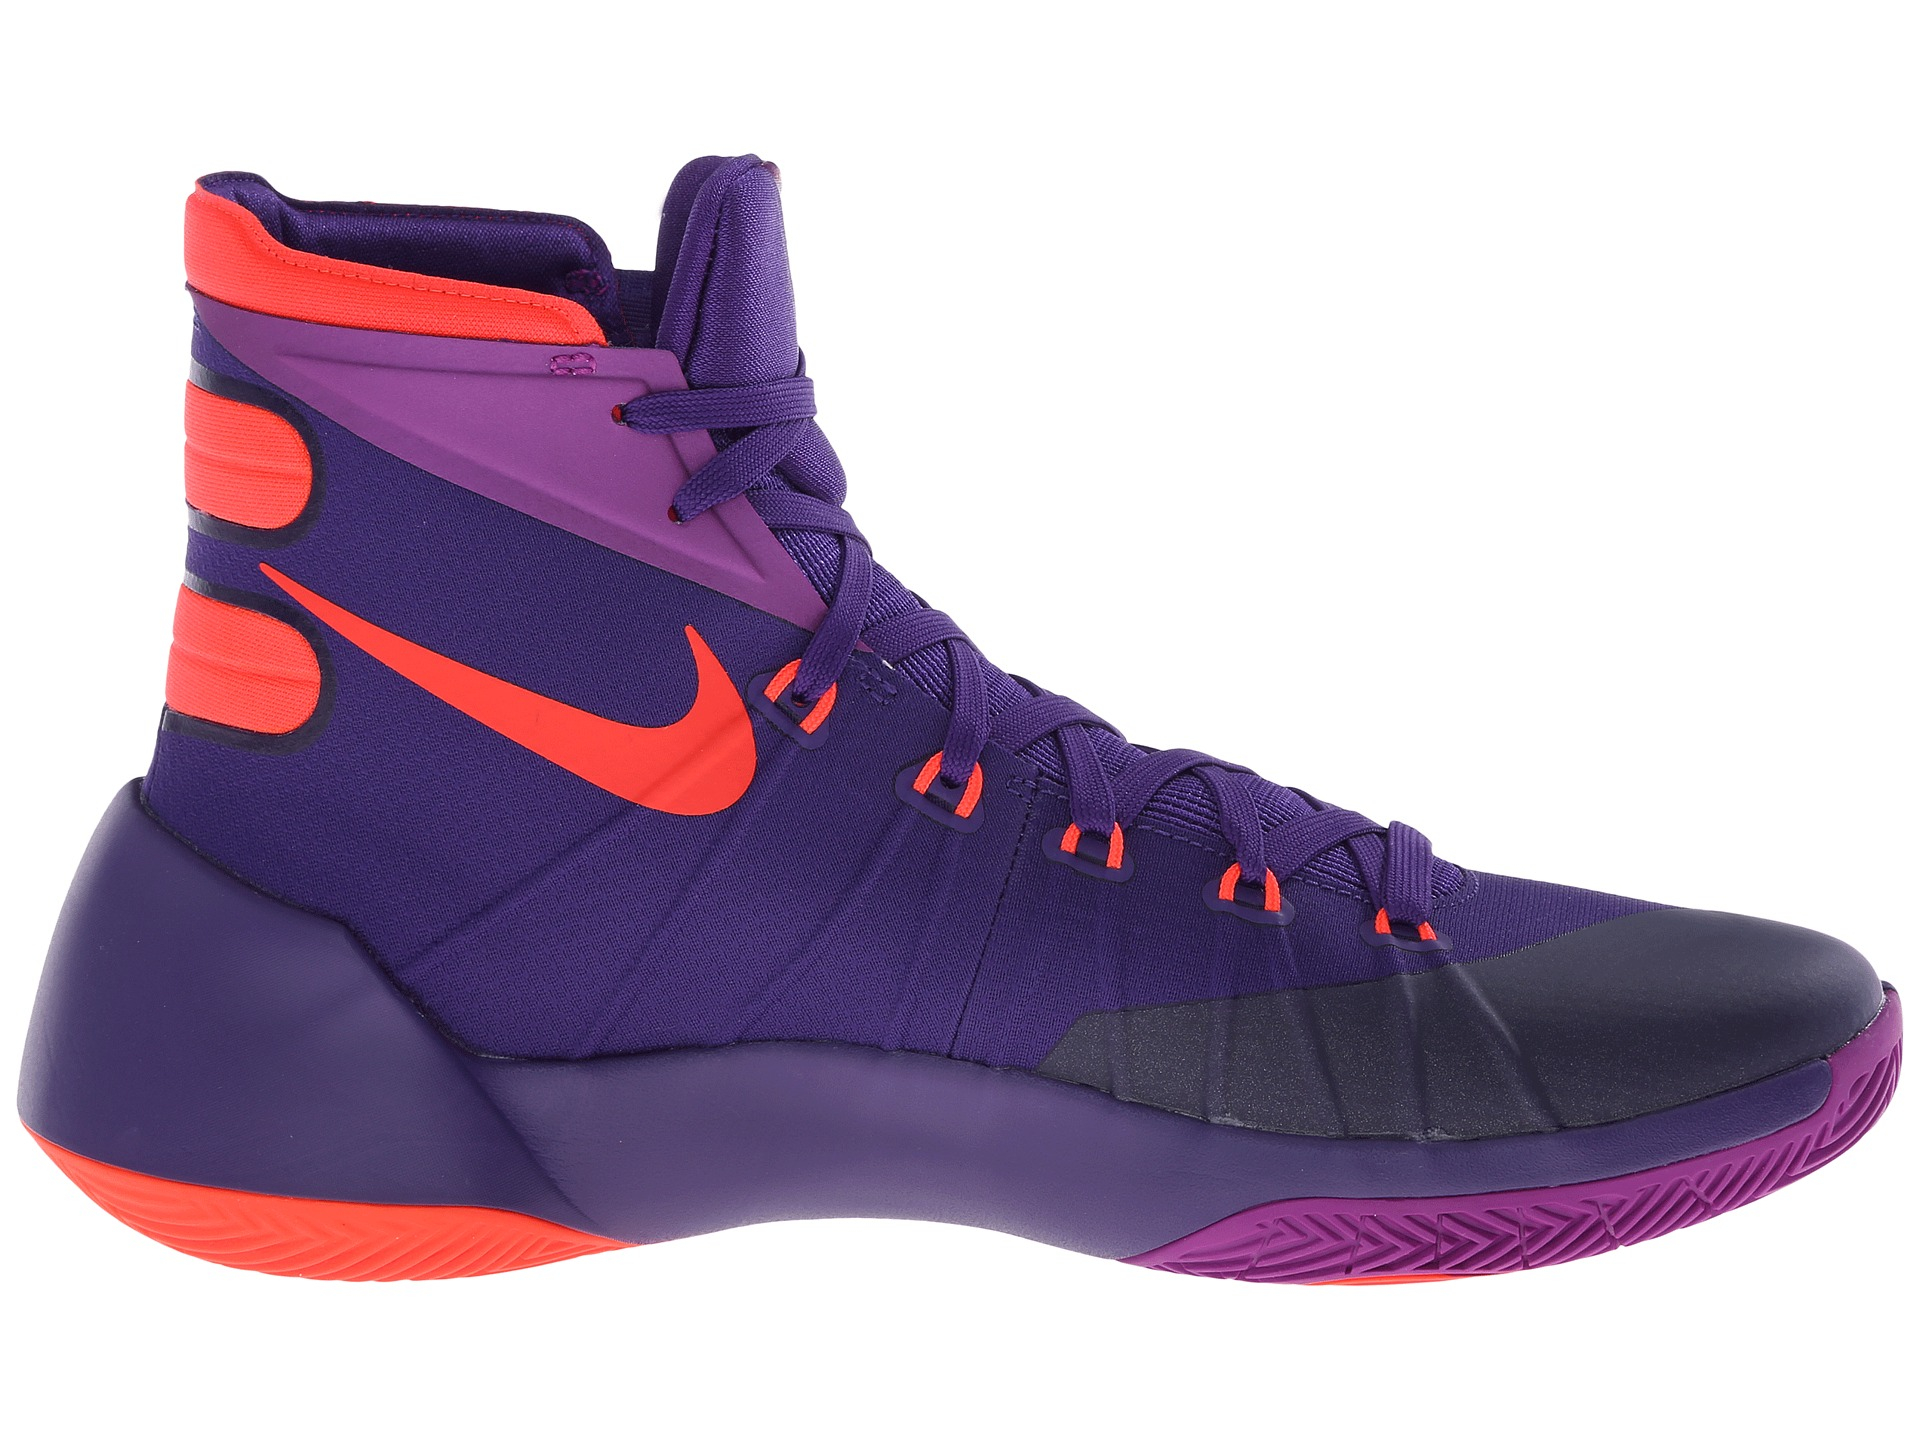 934529f111ae denmark purple red mens nike hyperdunk 2015 low shoes 316f0 426f6